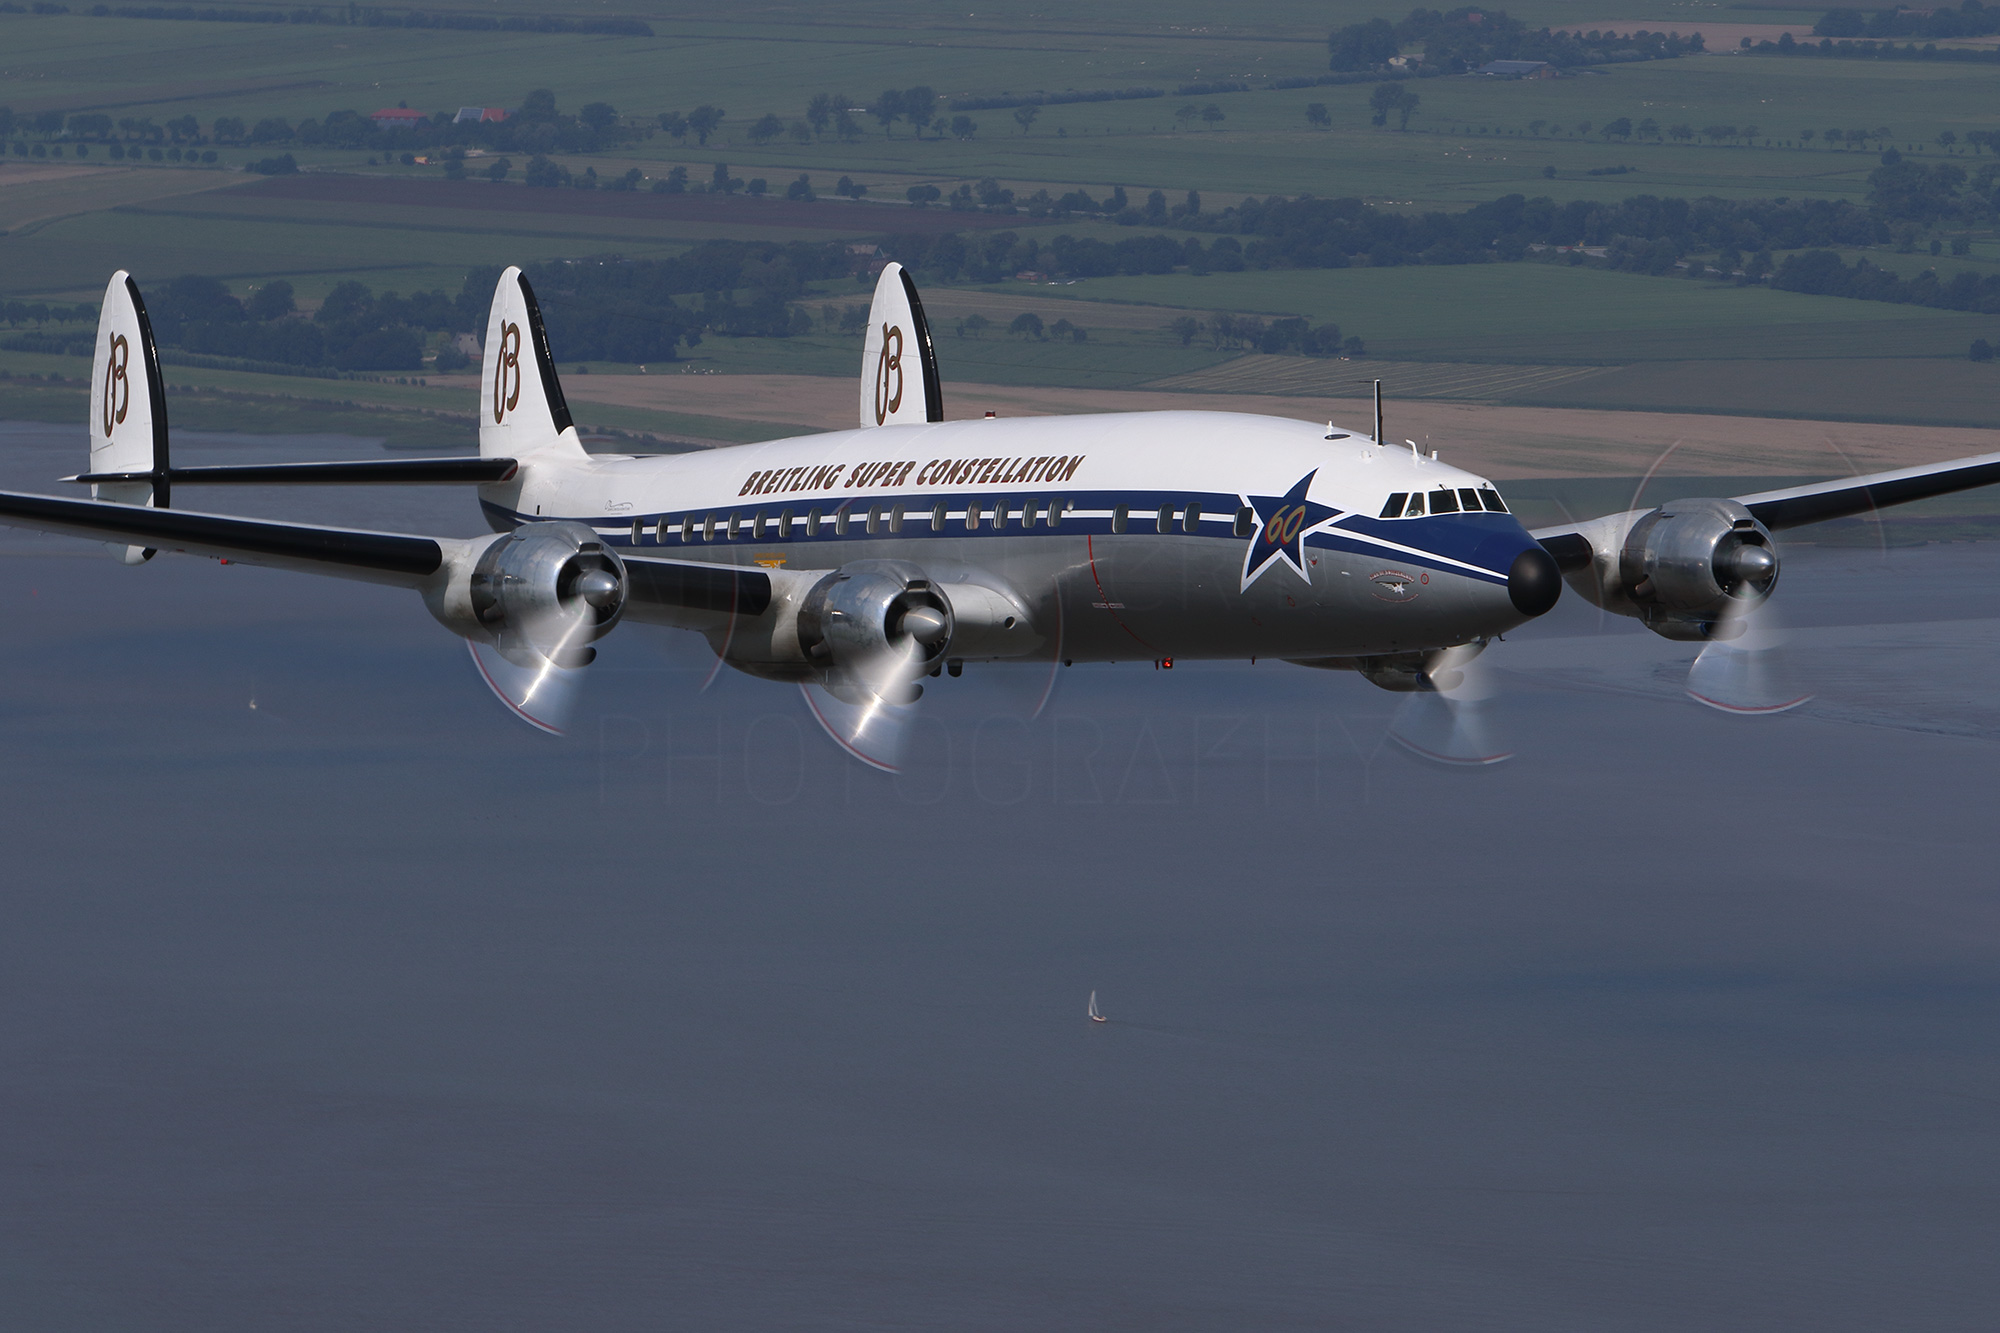 Airspotter.de 2015 Breitling Lockheed Super Constellation closeup